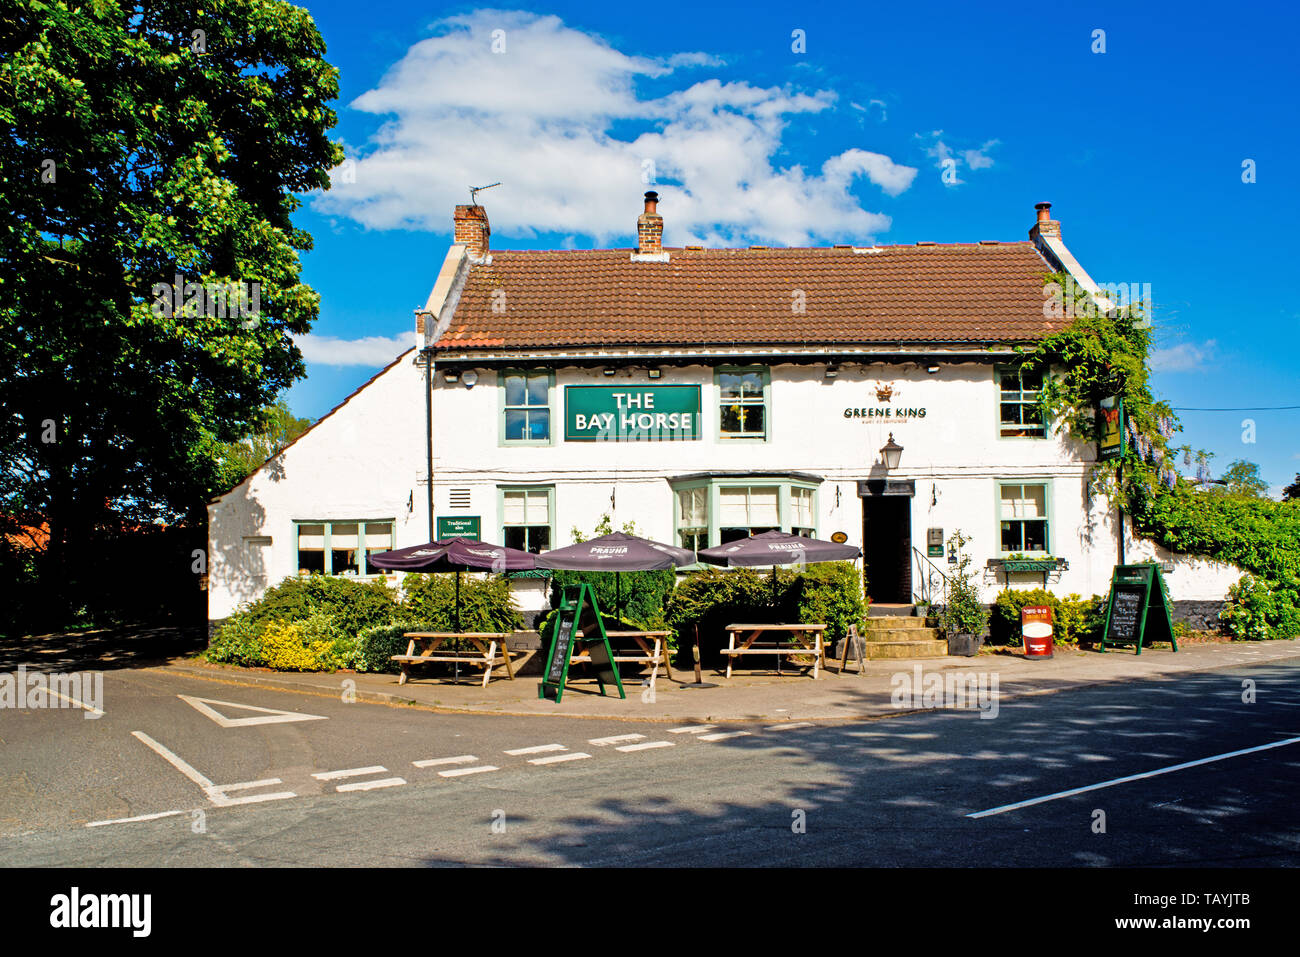 The Bay Horse, Green Hammerton, North Yorkshire, England - Stock Image